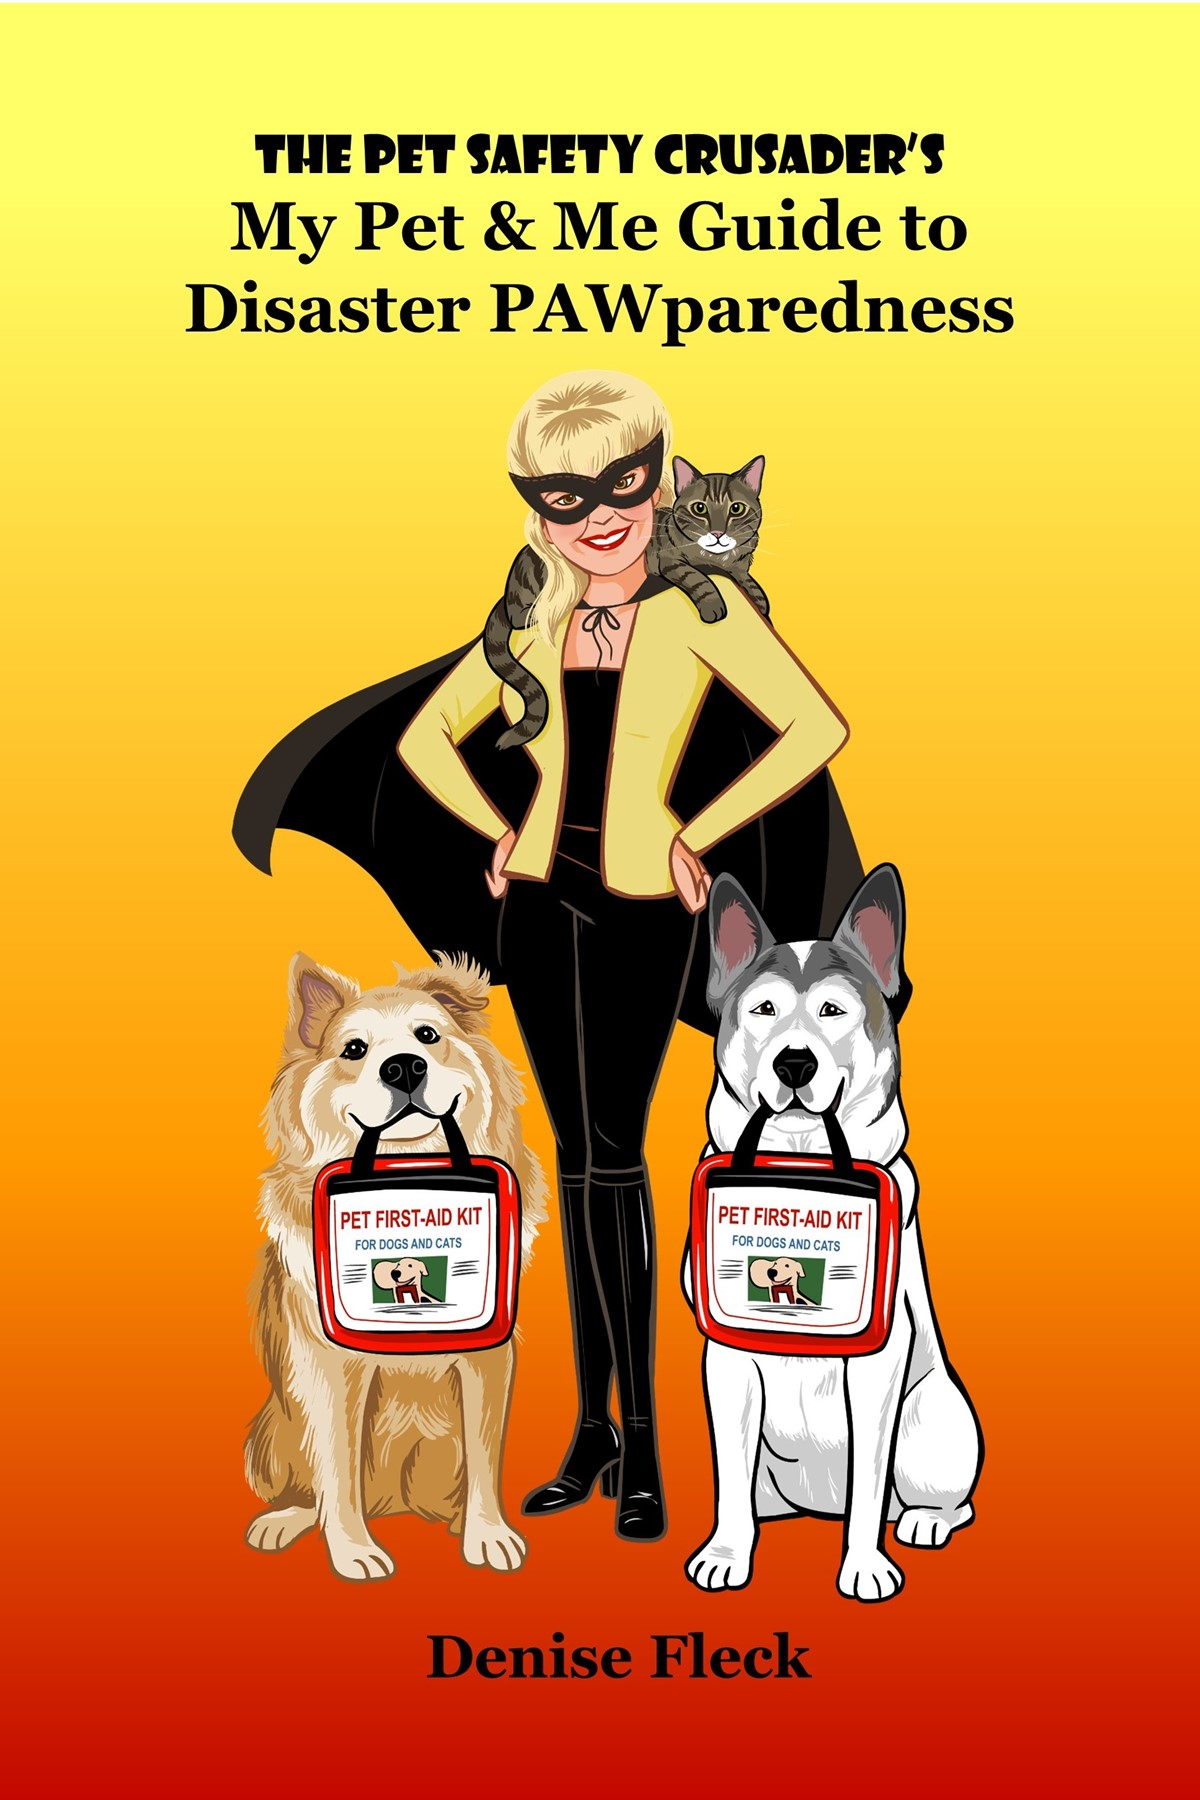 My Pet & Me Guide to Disaster PAWparedness - Available on Amazon